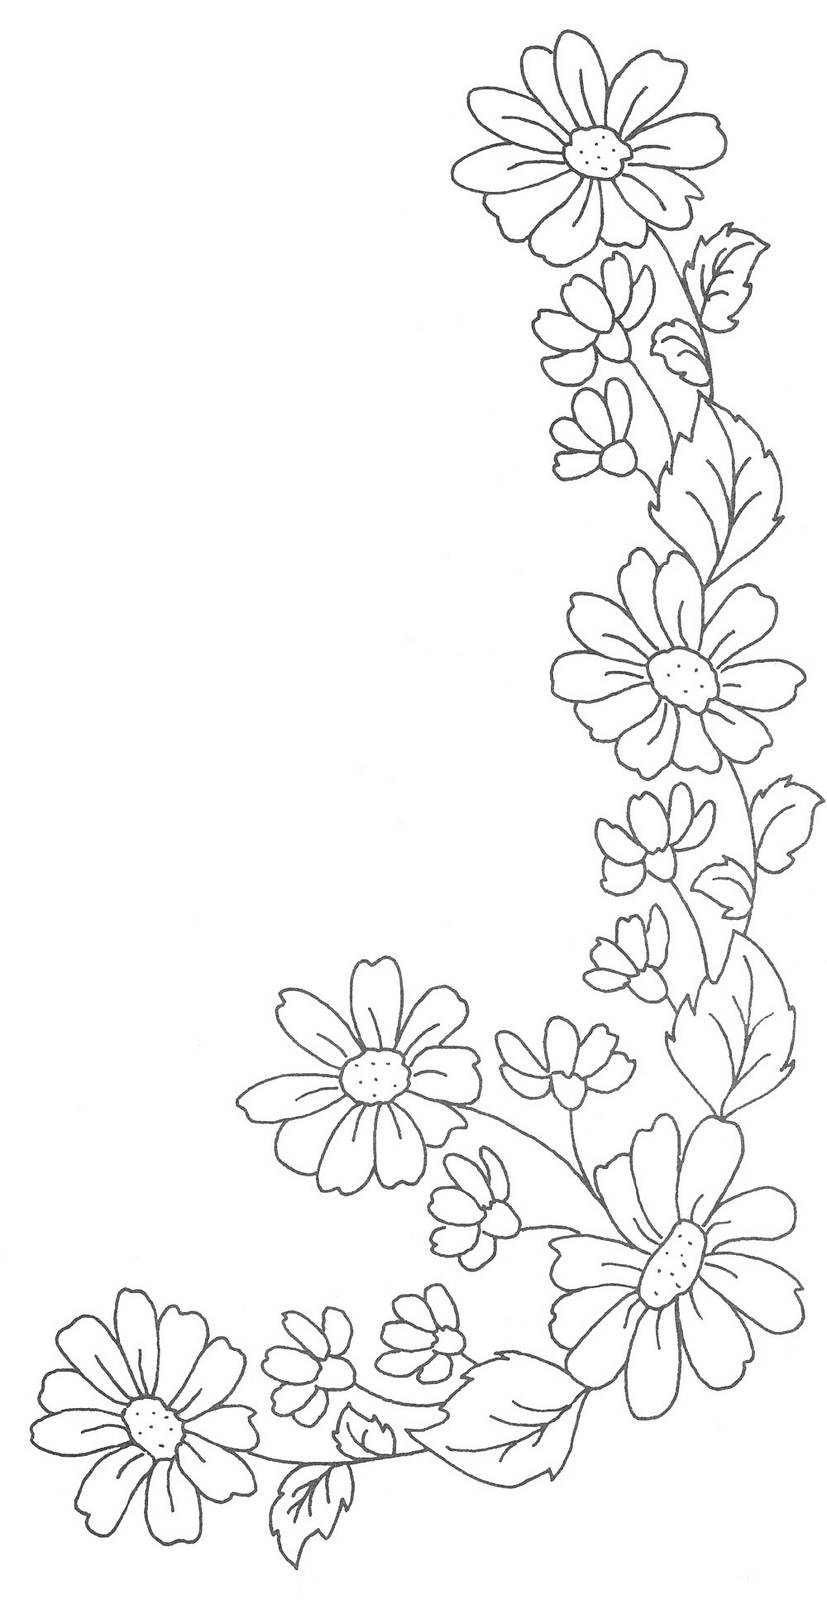 827x1600 Daisy Chain Daisy Chain, Patterns And Embroidery